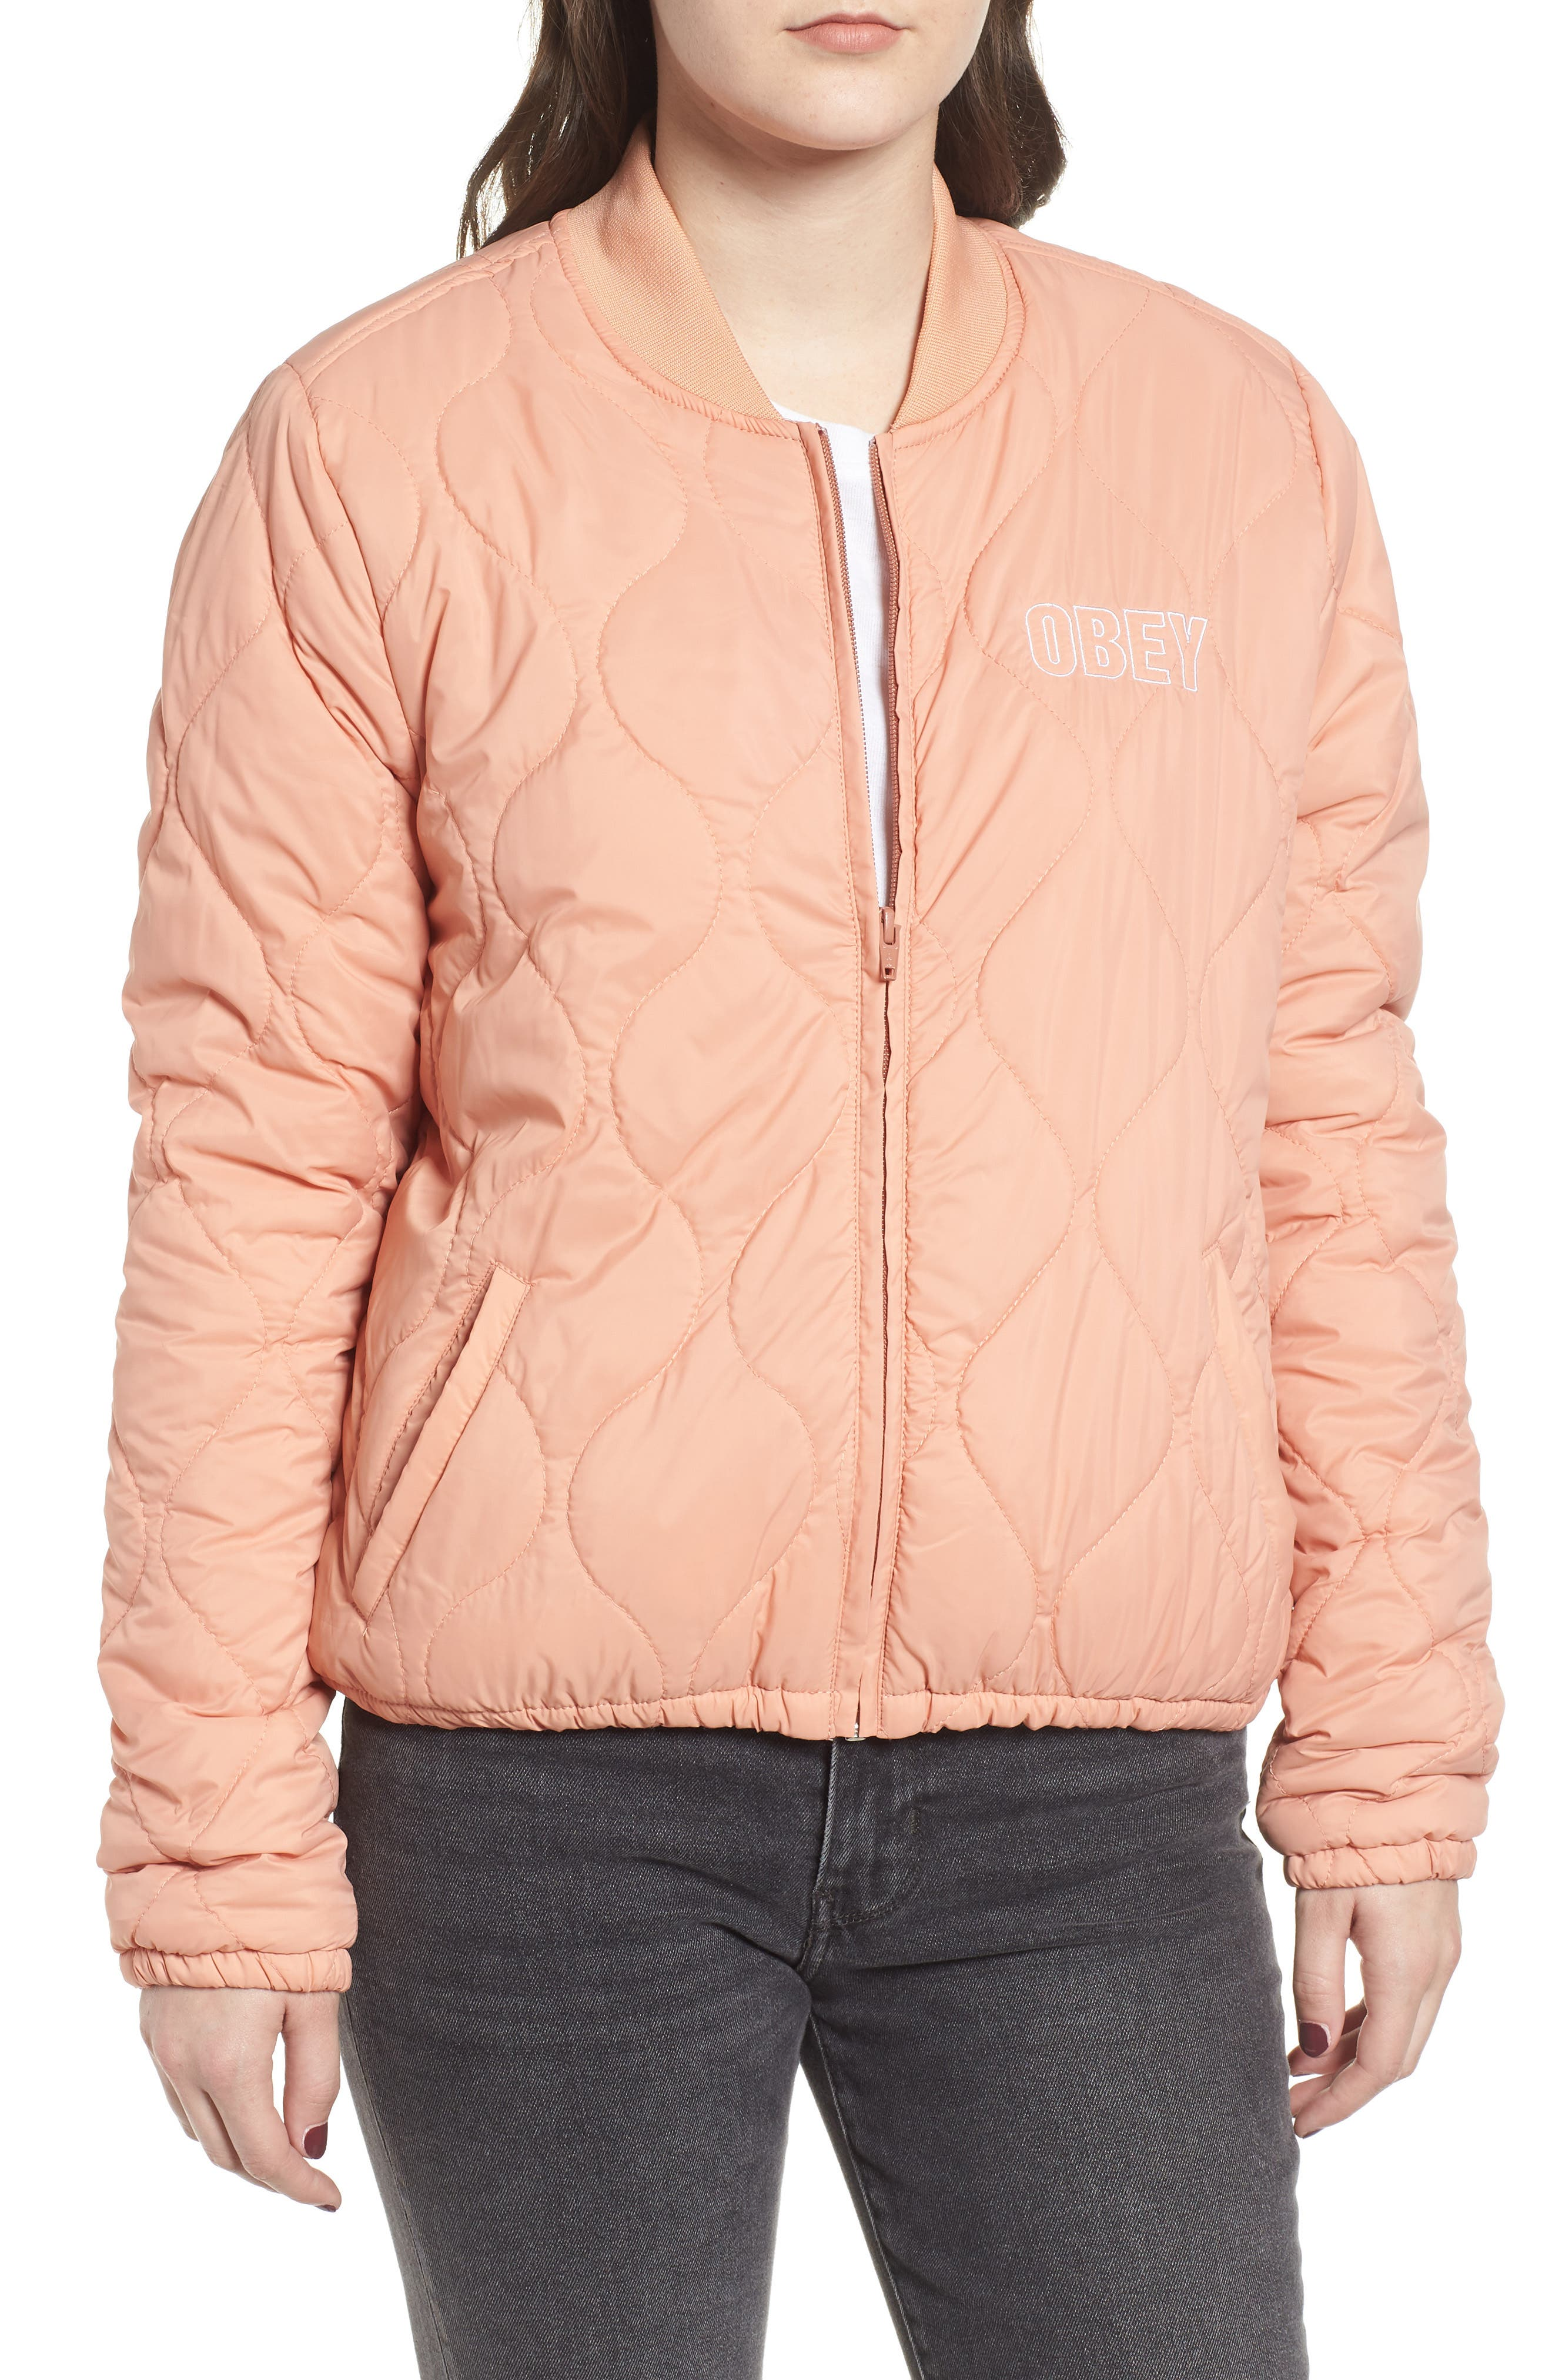 OBEY,                             Bunker Quilted Bomber Jacket,                             Alternate thumbnail 5, color,                             950